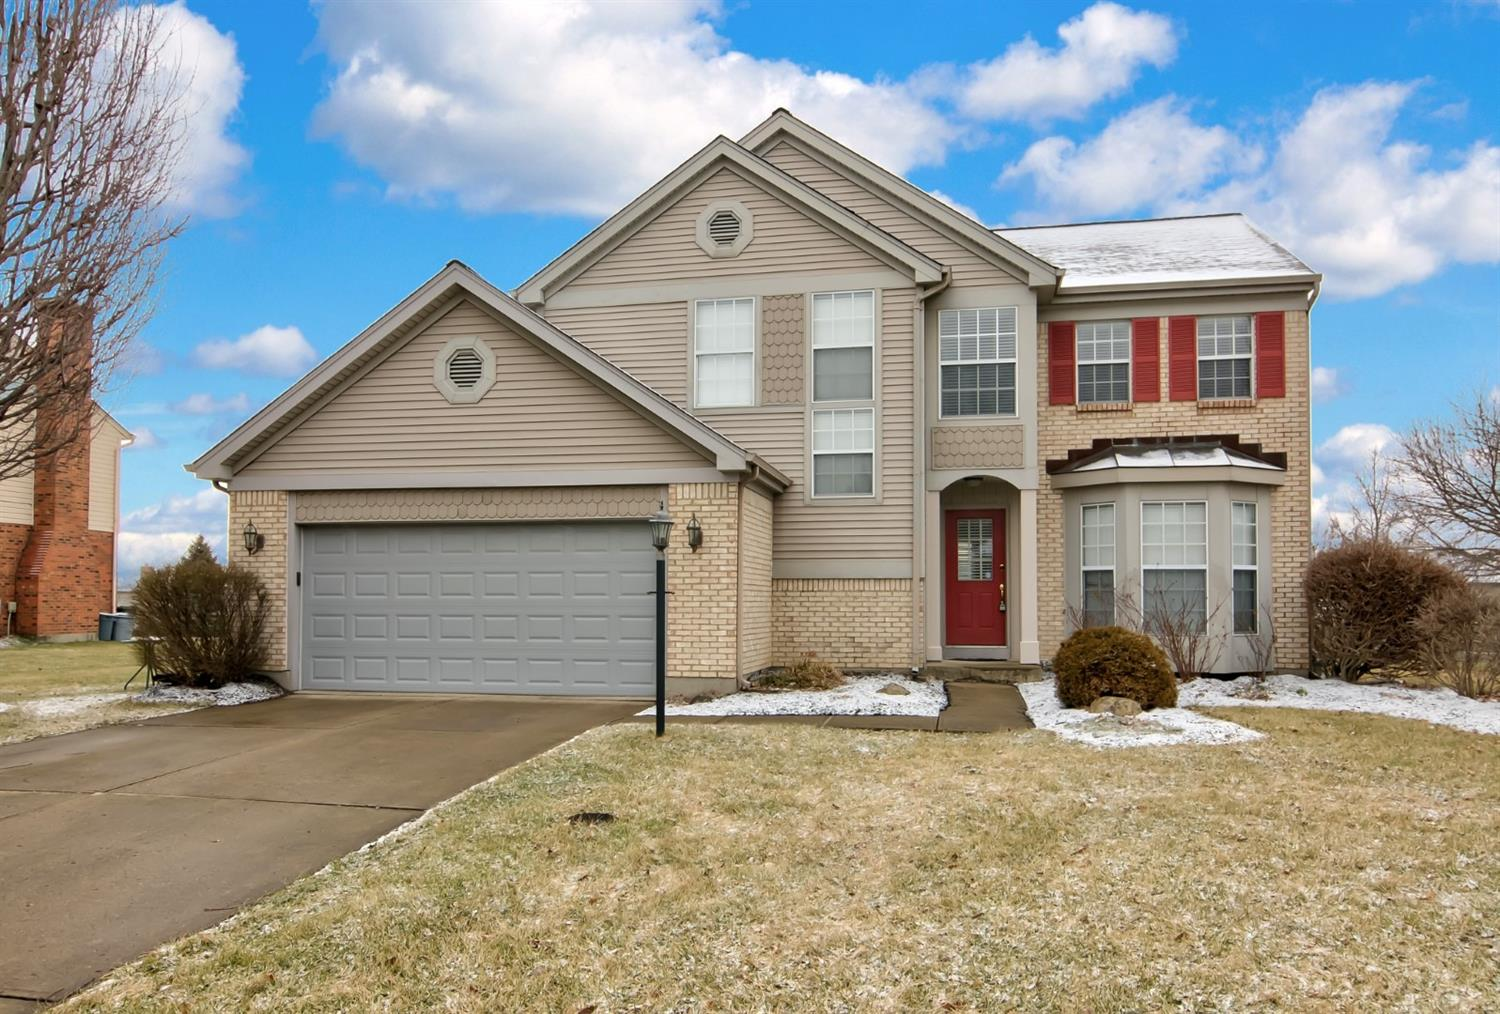 Property for sale at 6076 Blueberry Drive, Liberty Twp,  Ohio 45011